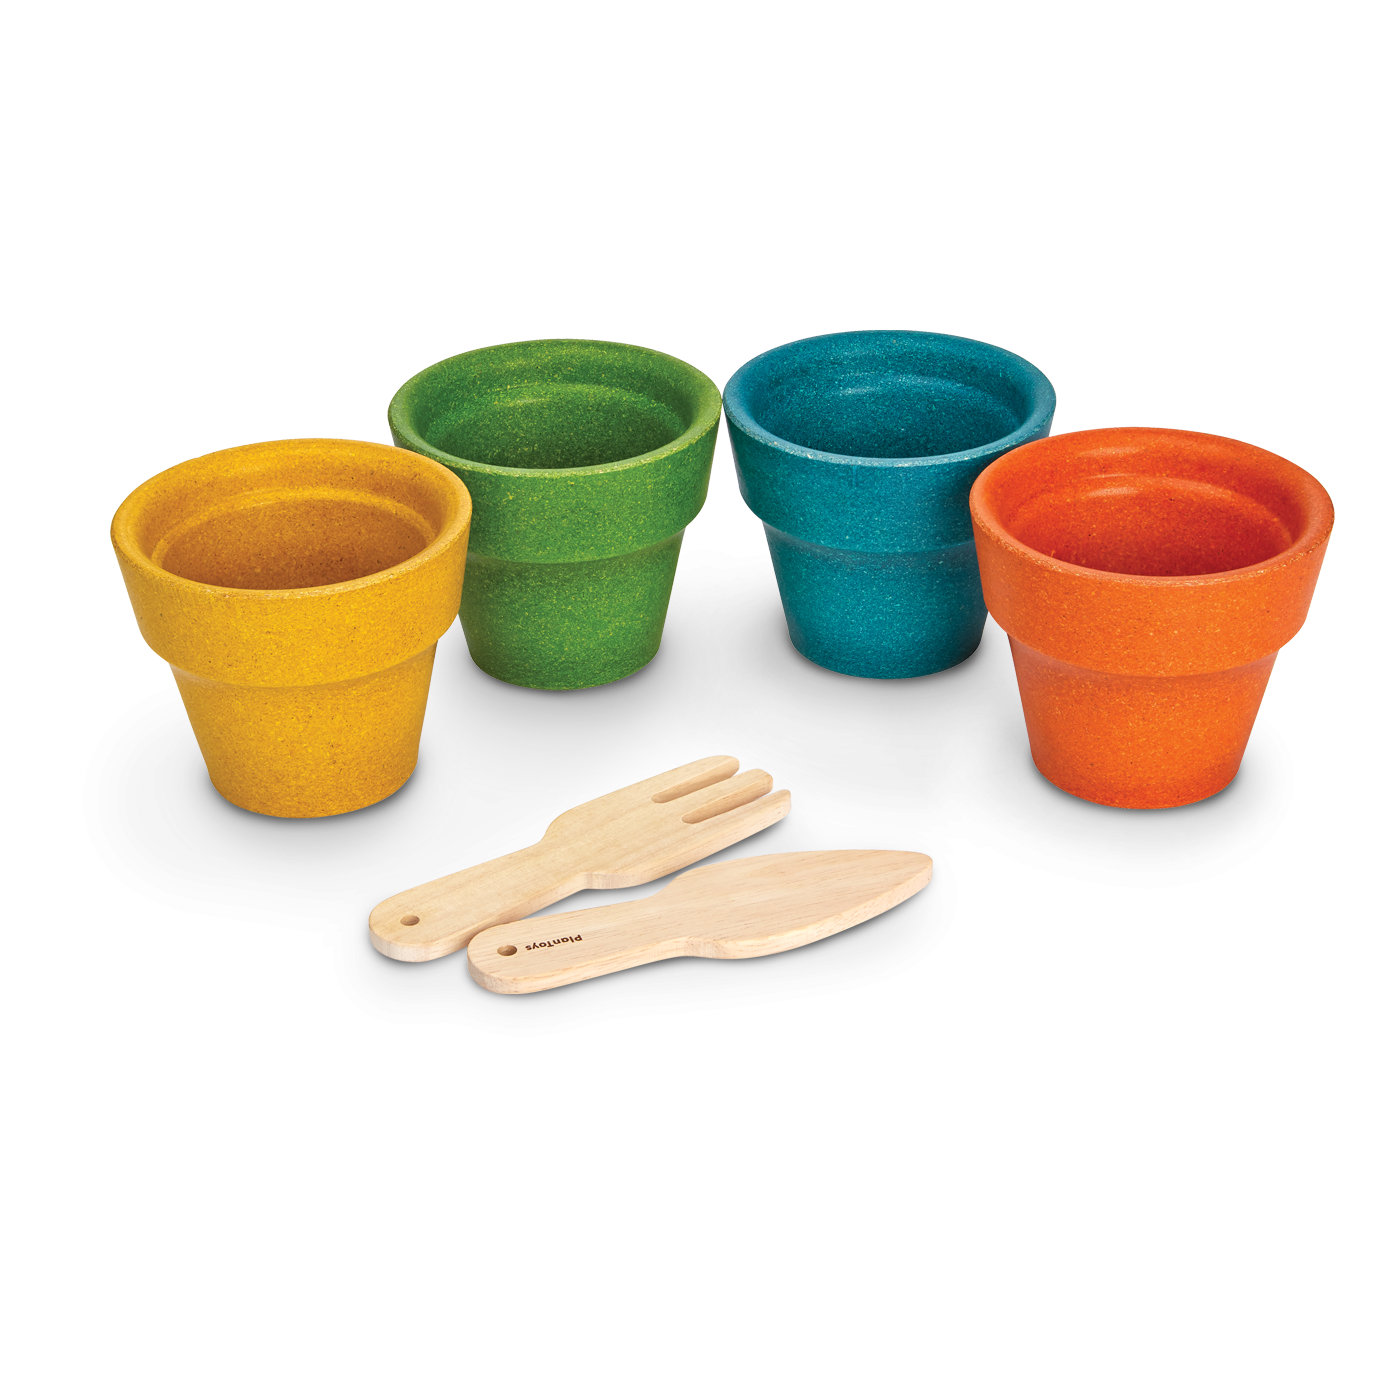 8617_PlanToys_FLOWER_POT_SET_Pretend_Play_2yrs_Emotion_Language_and_Communications_Tactile_Wooden_toys_Education_toys_Safety_Toys_Non-toxic_3.jpg